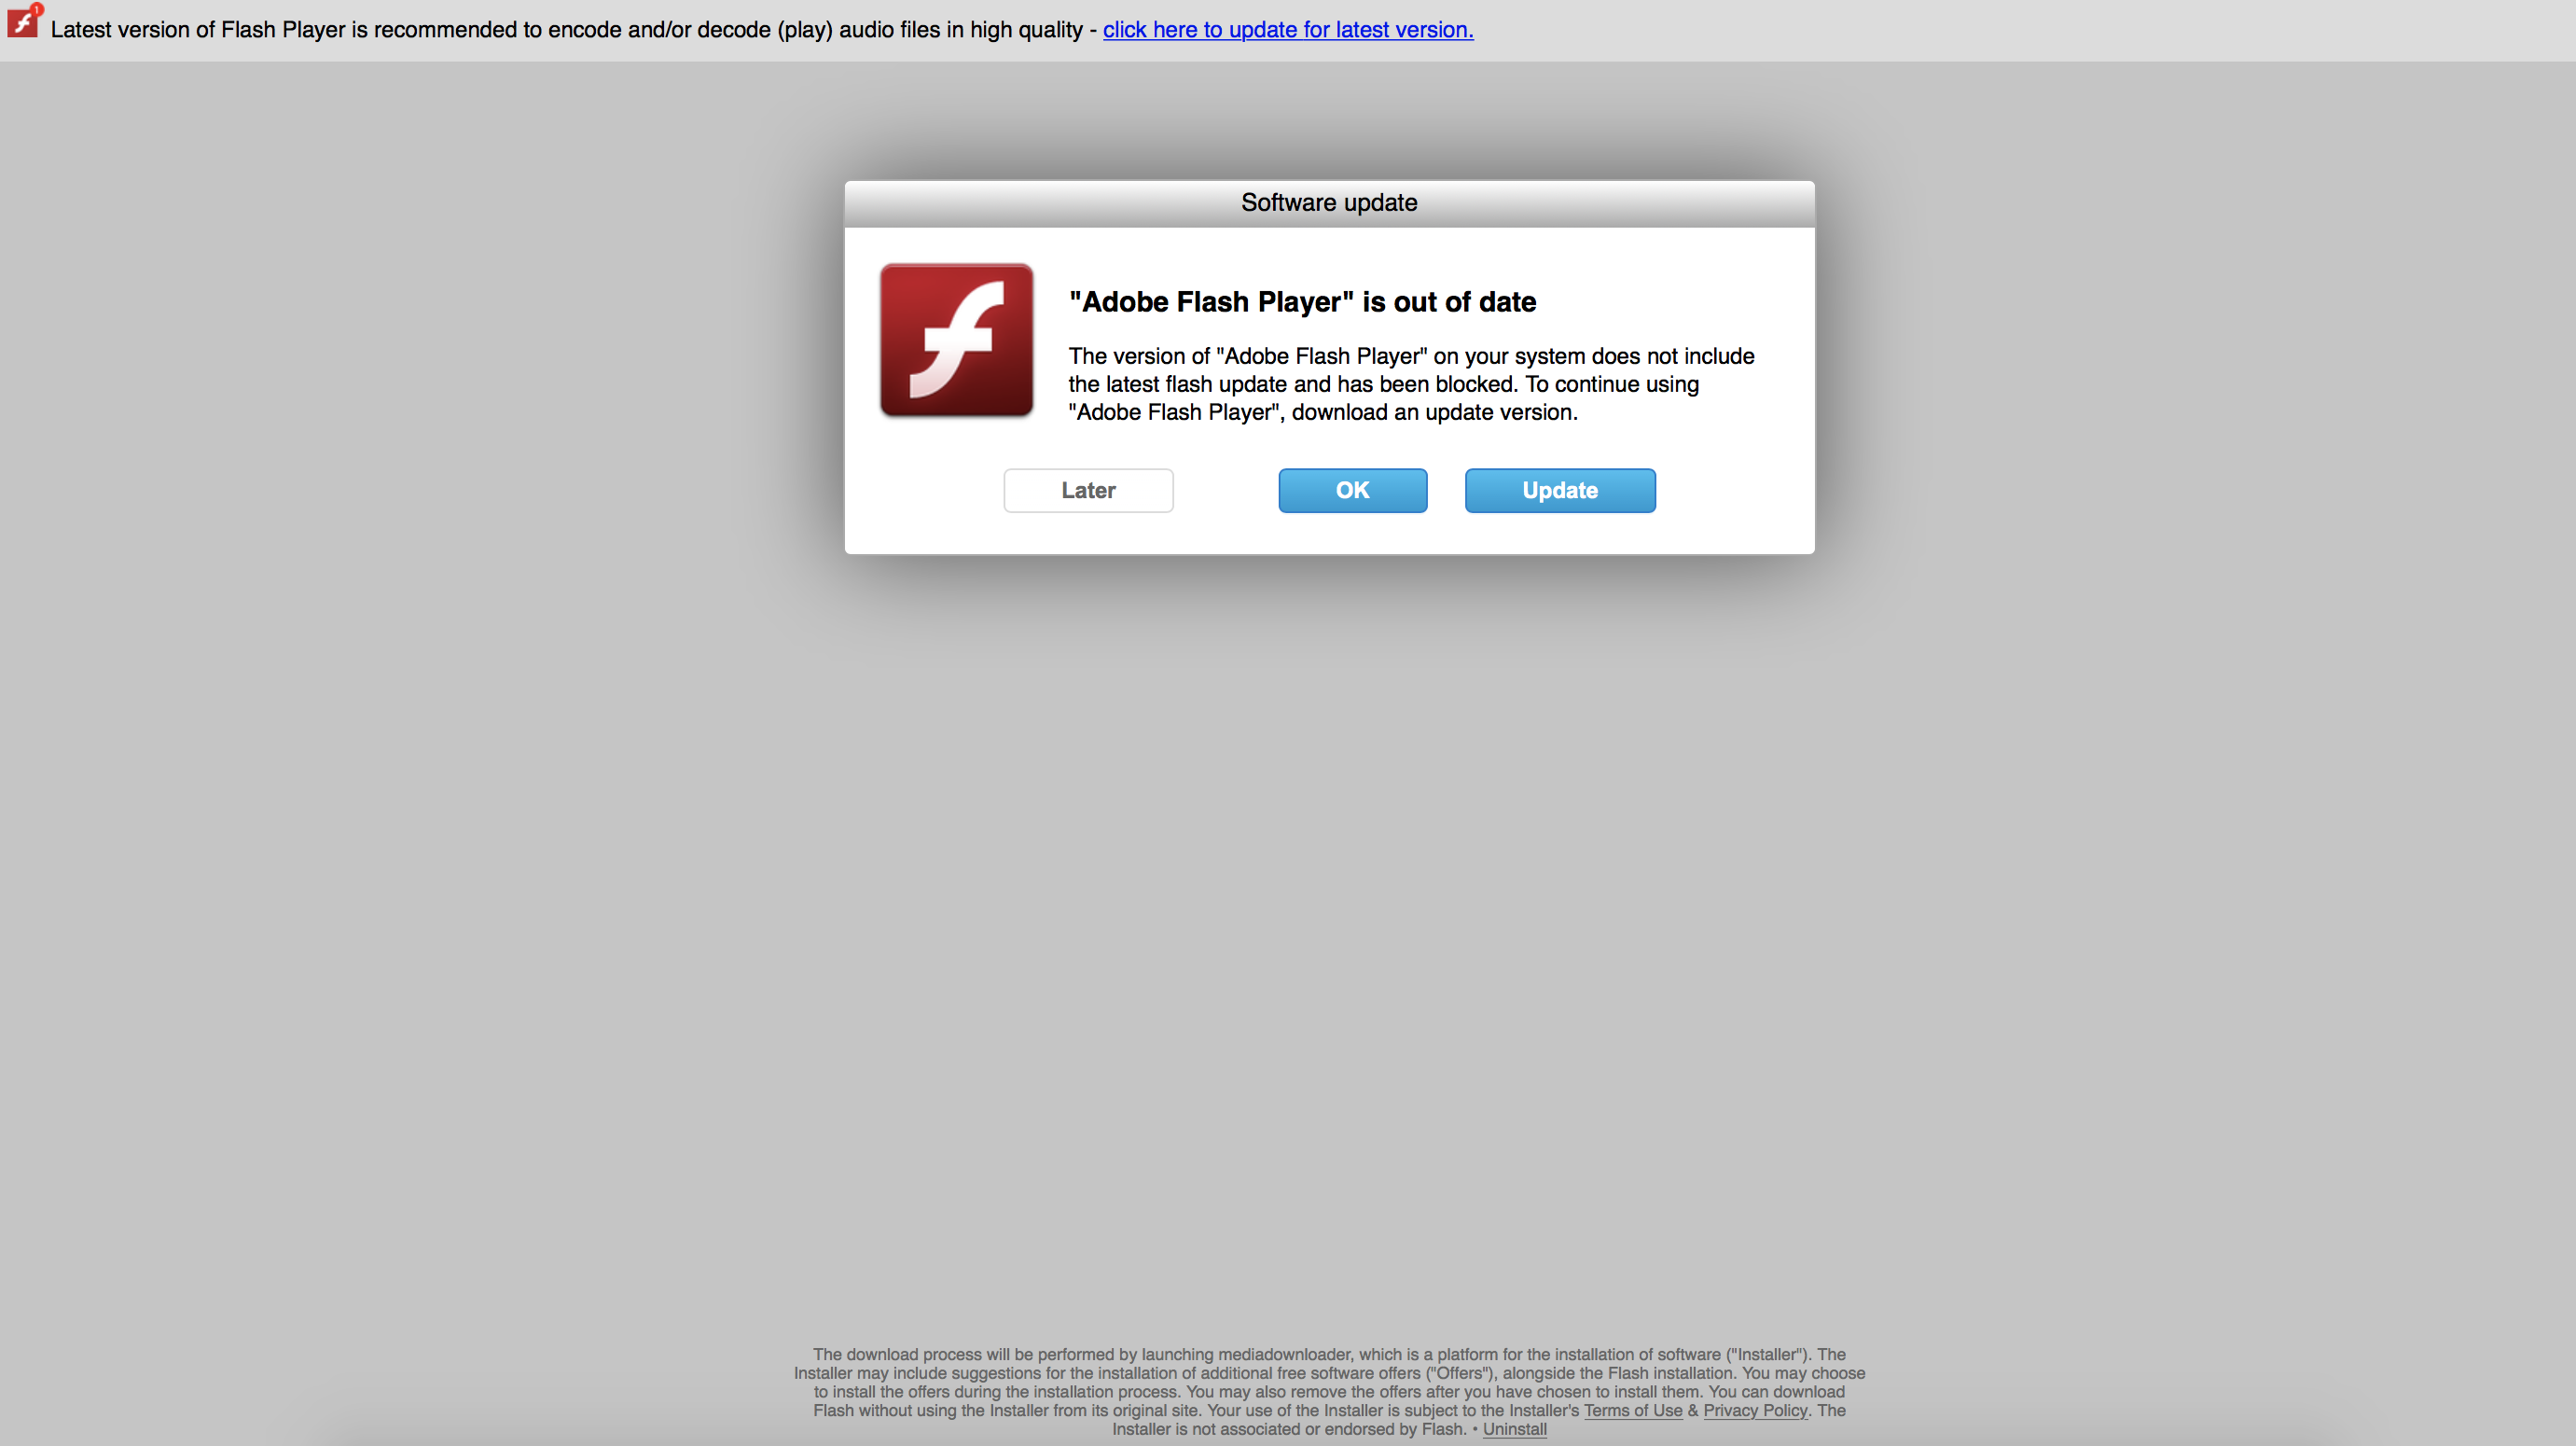 Beware of fake Flash Player update on OSX - Adobe Support